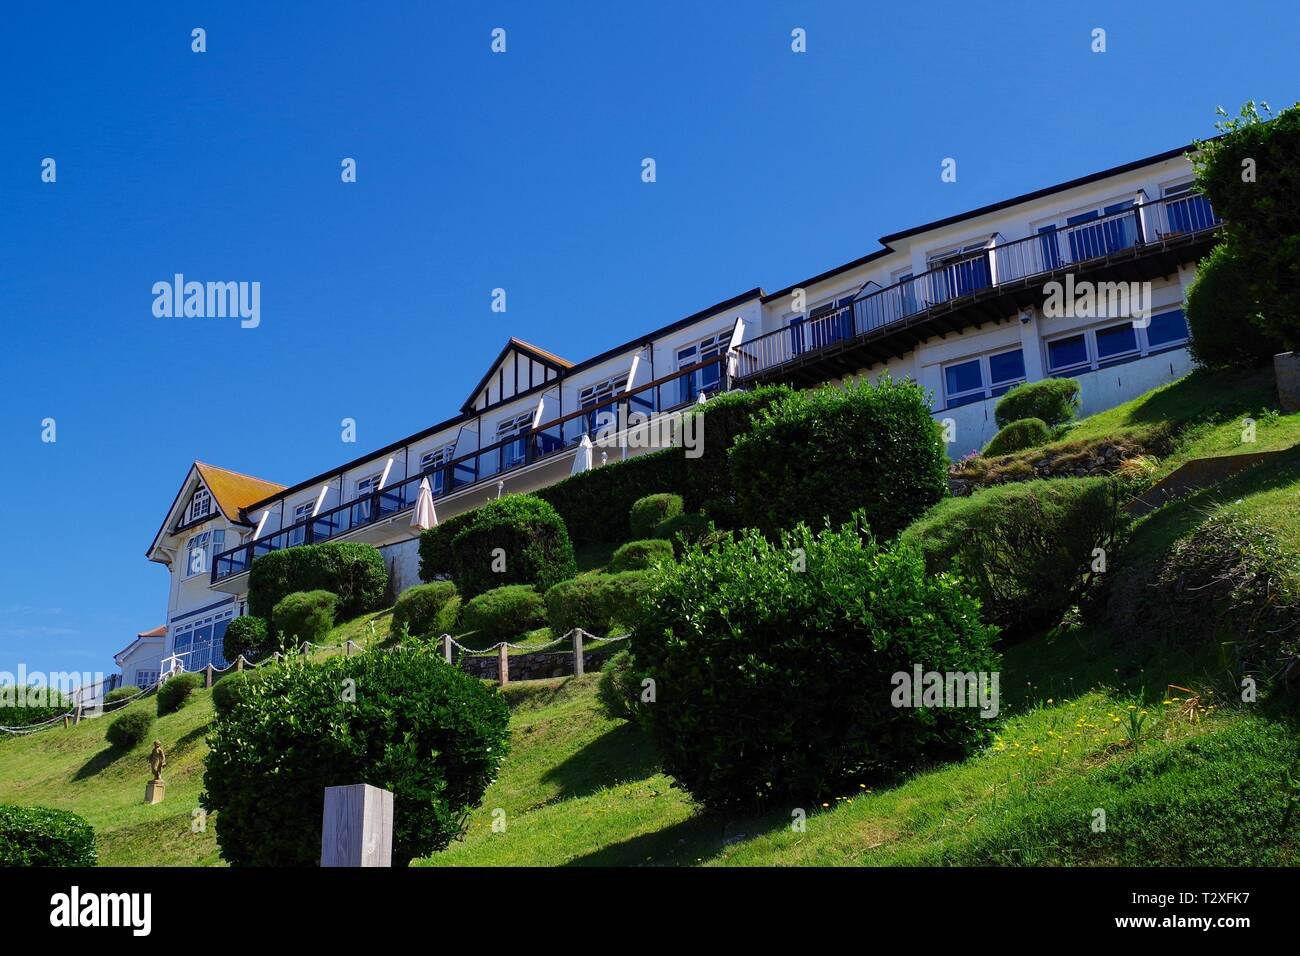 The Cottage Hotel at Hope Cove on a Sunny Summers Day. South Hams, Devon, UK. - Stock Image